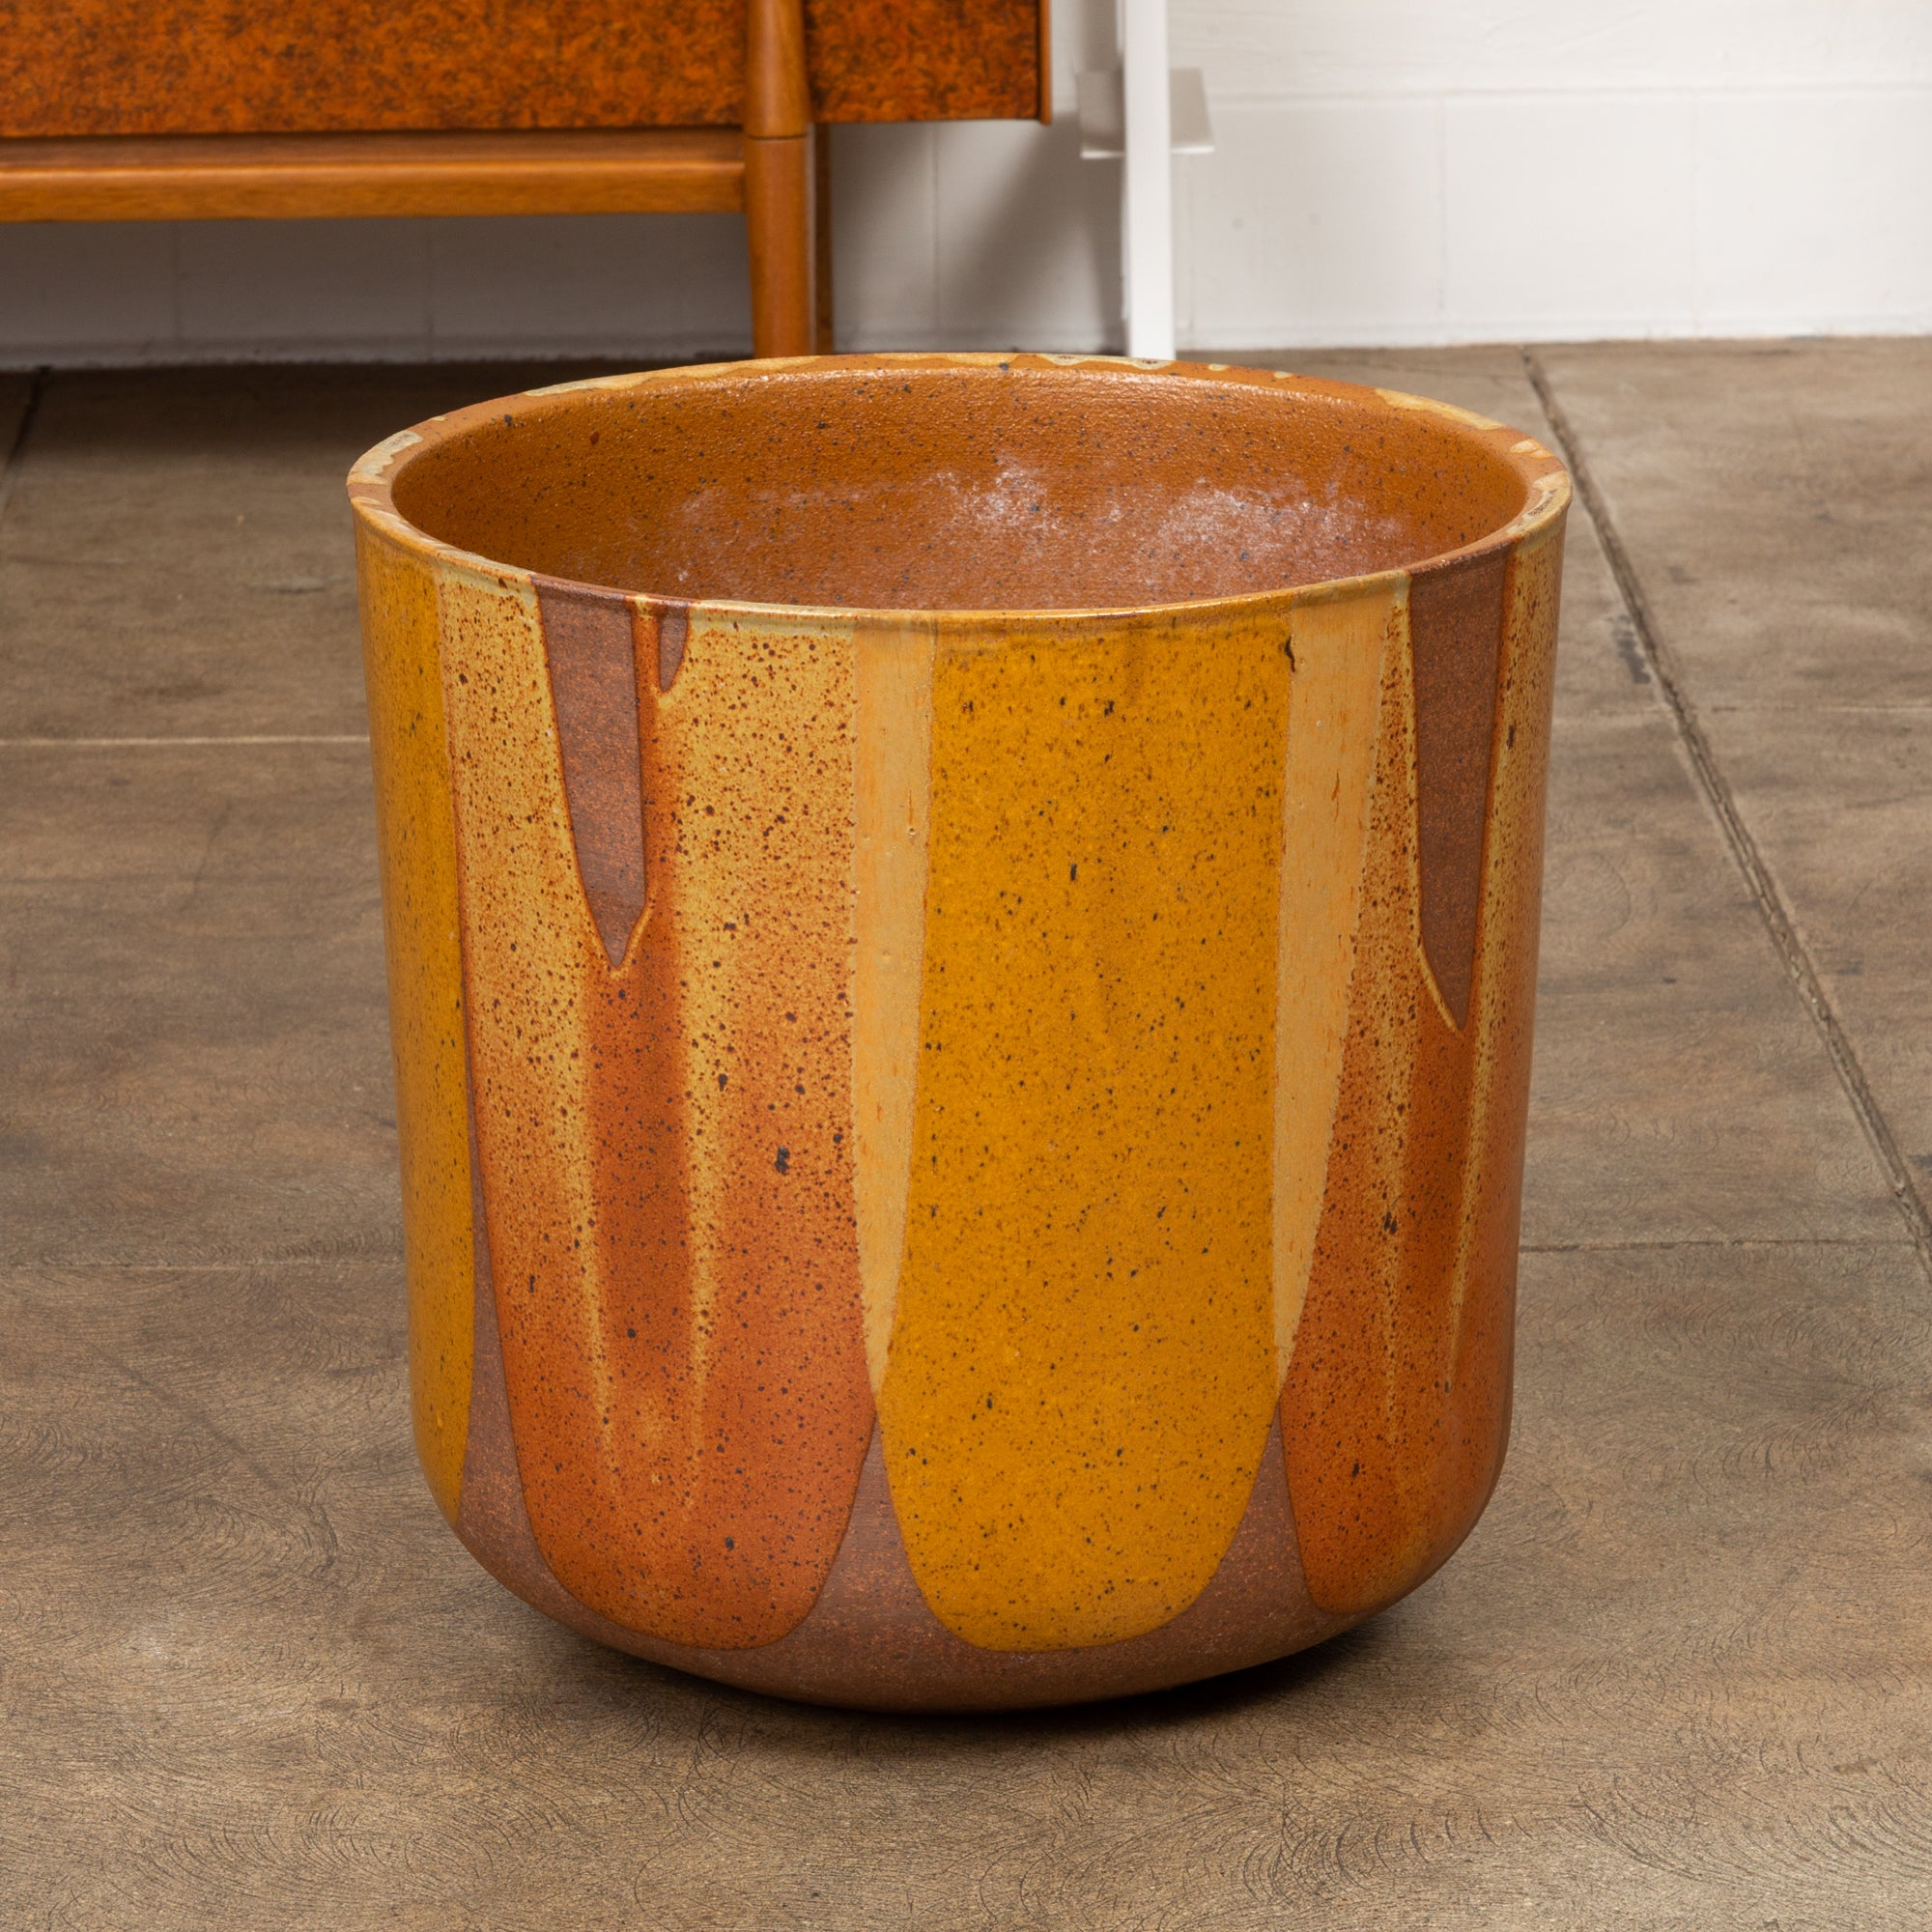 David Cressey LT-24 Flame-Glazed Planter for Architectural Pottery